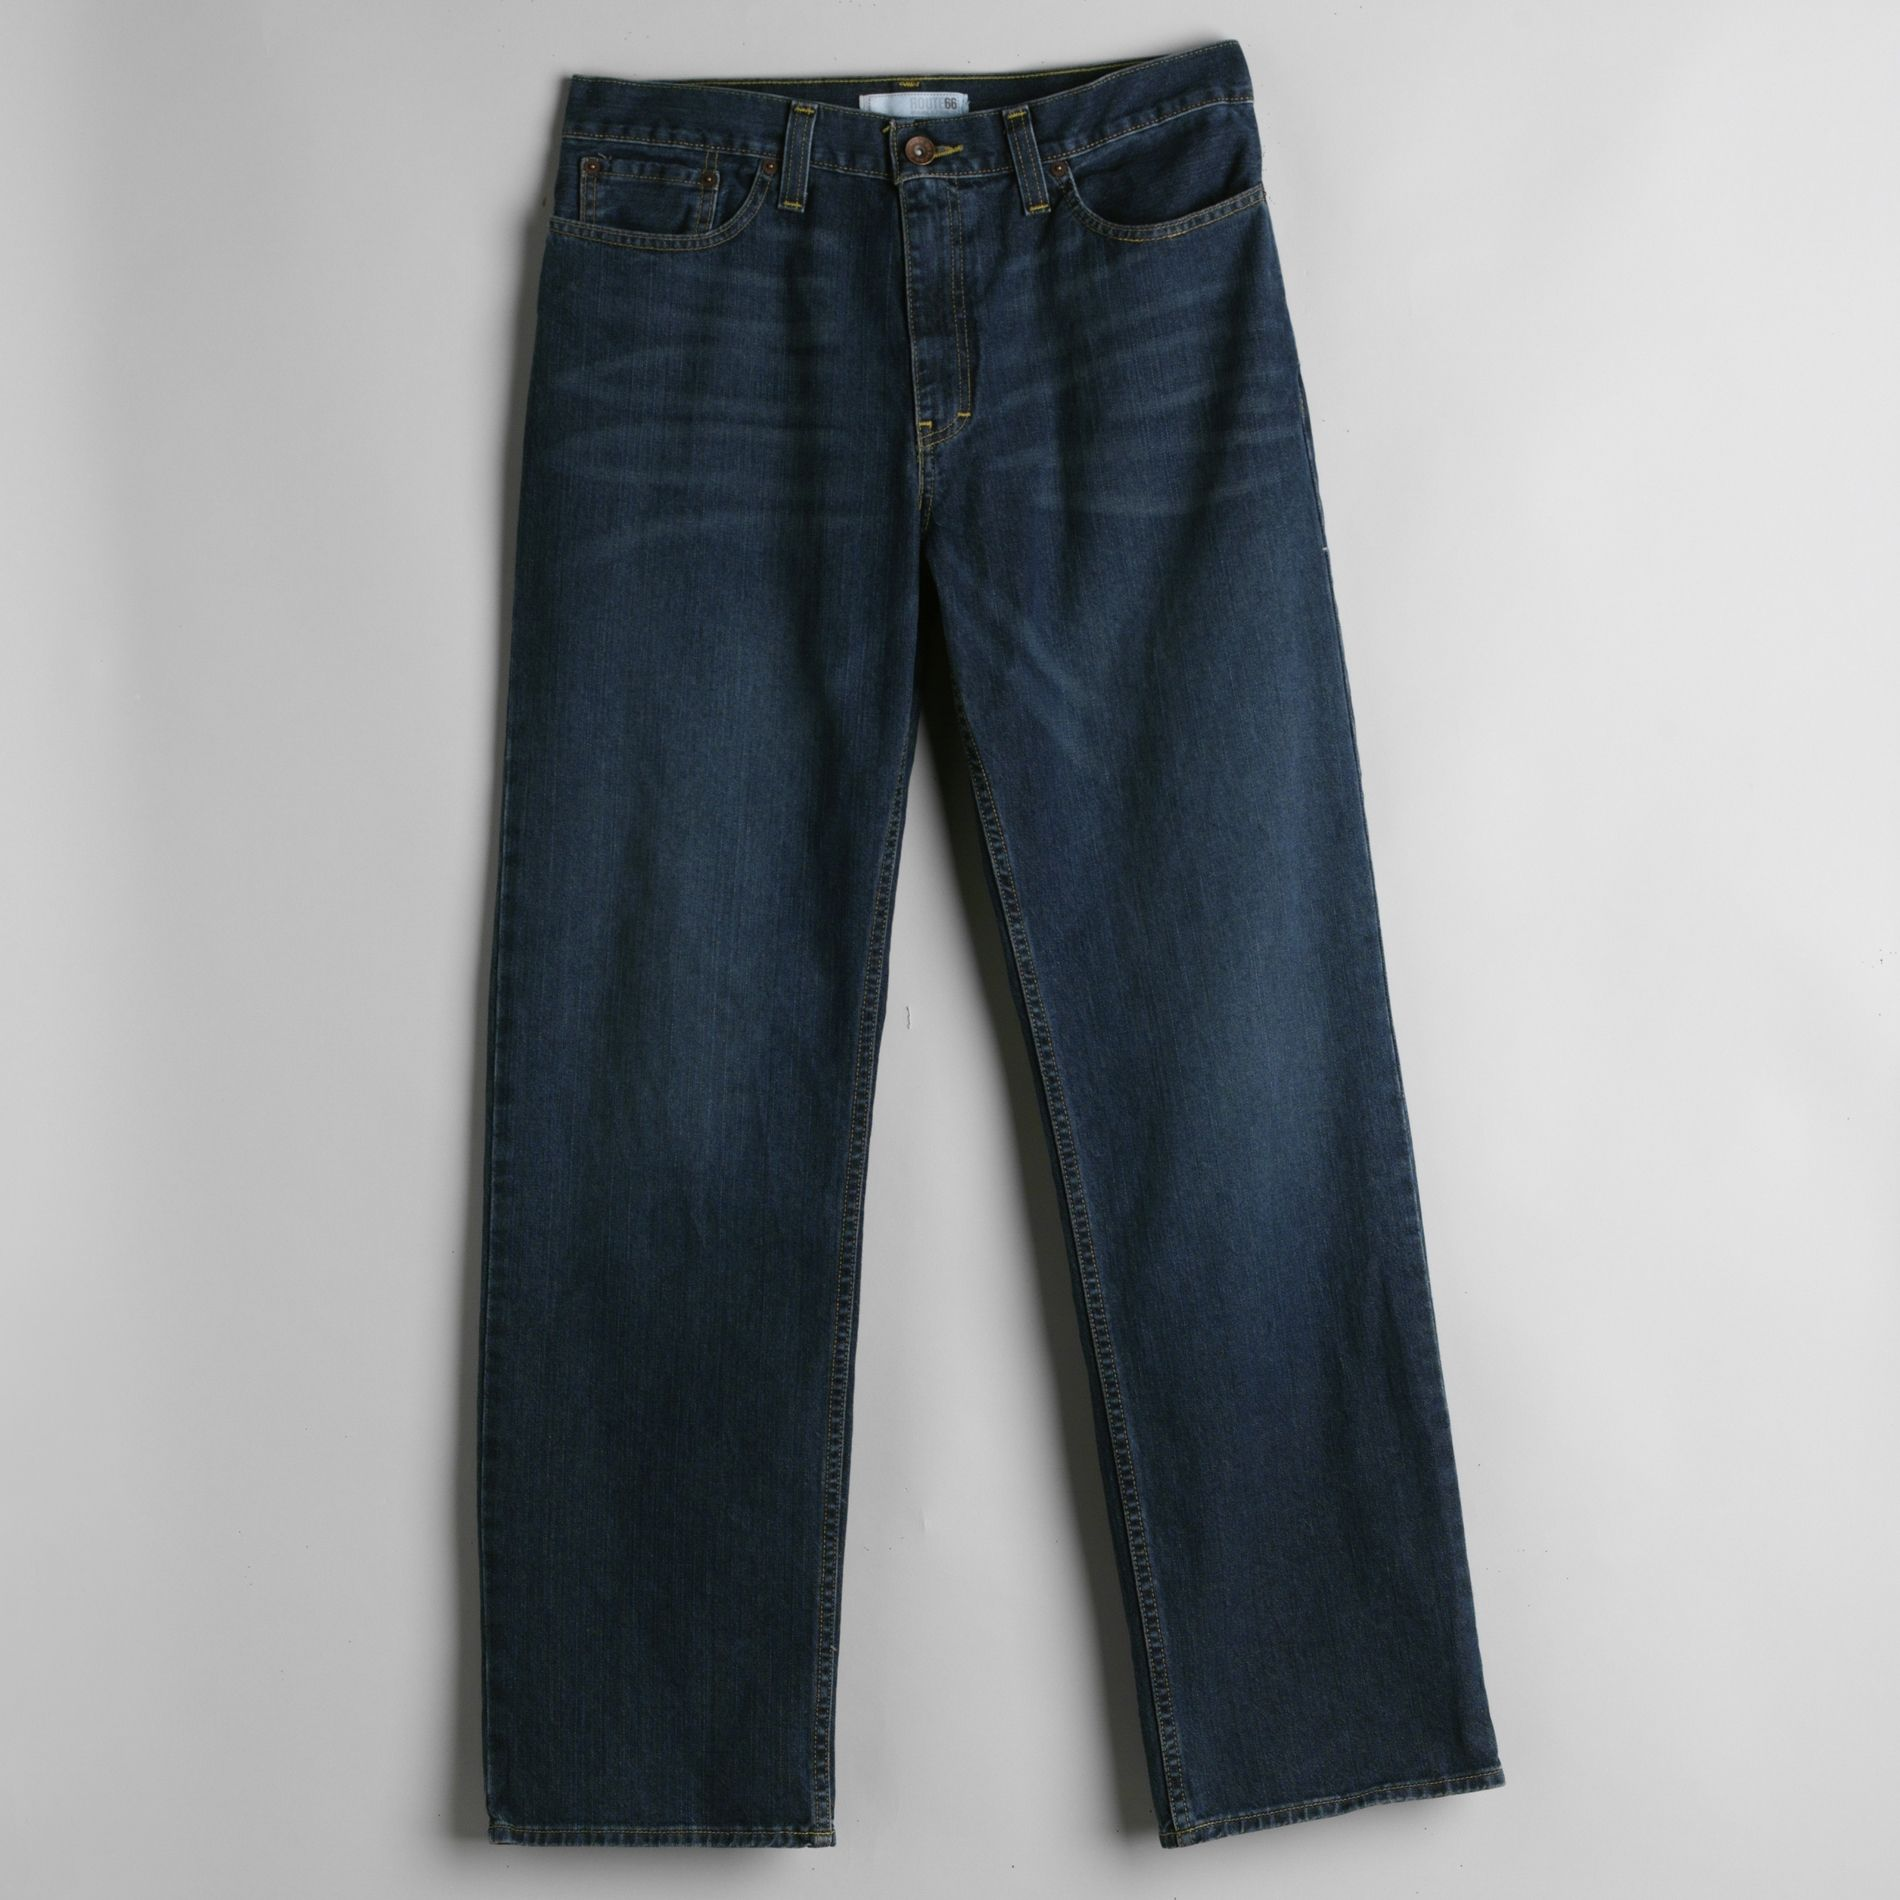 Route 66 Men's Big & Tall Relaxed Jeans at Kmart.com